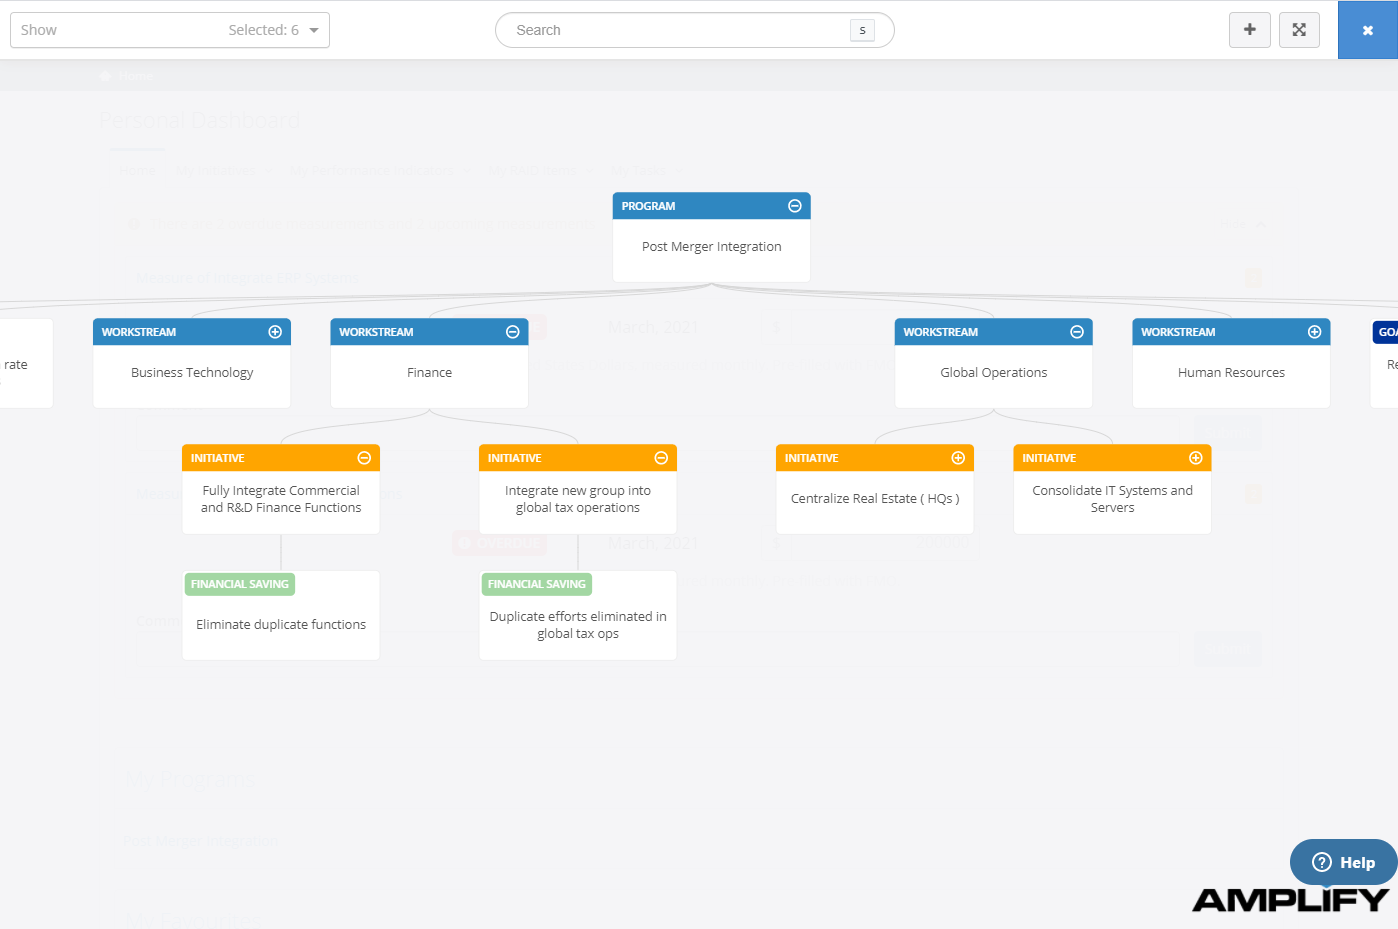 Amplify Strategy Execution screenshot: Amplify's program hierarchy allows initiative views to align with program governance structures - helping provide visibility and accountability.